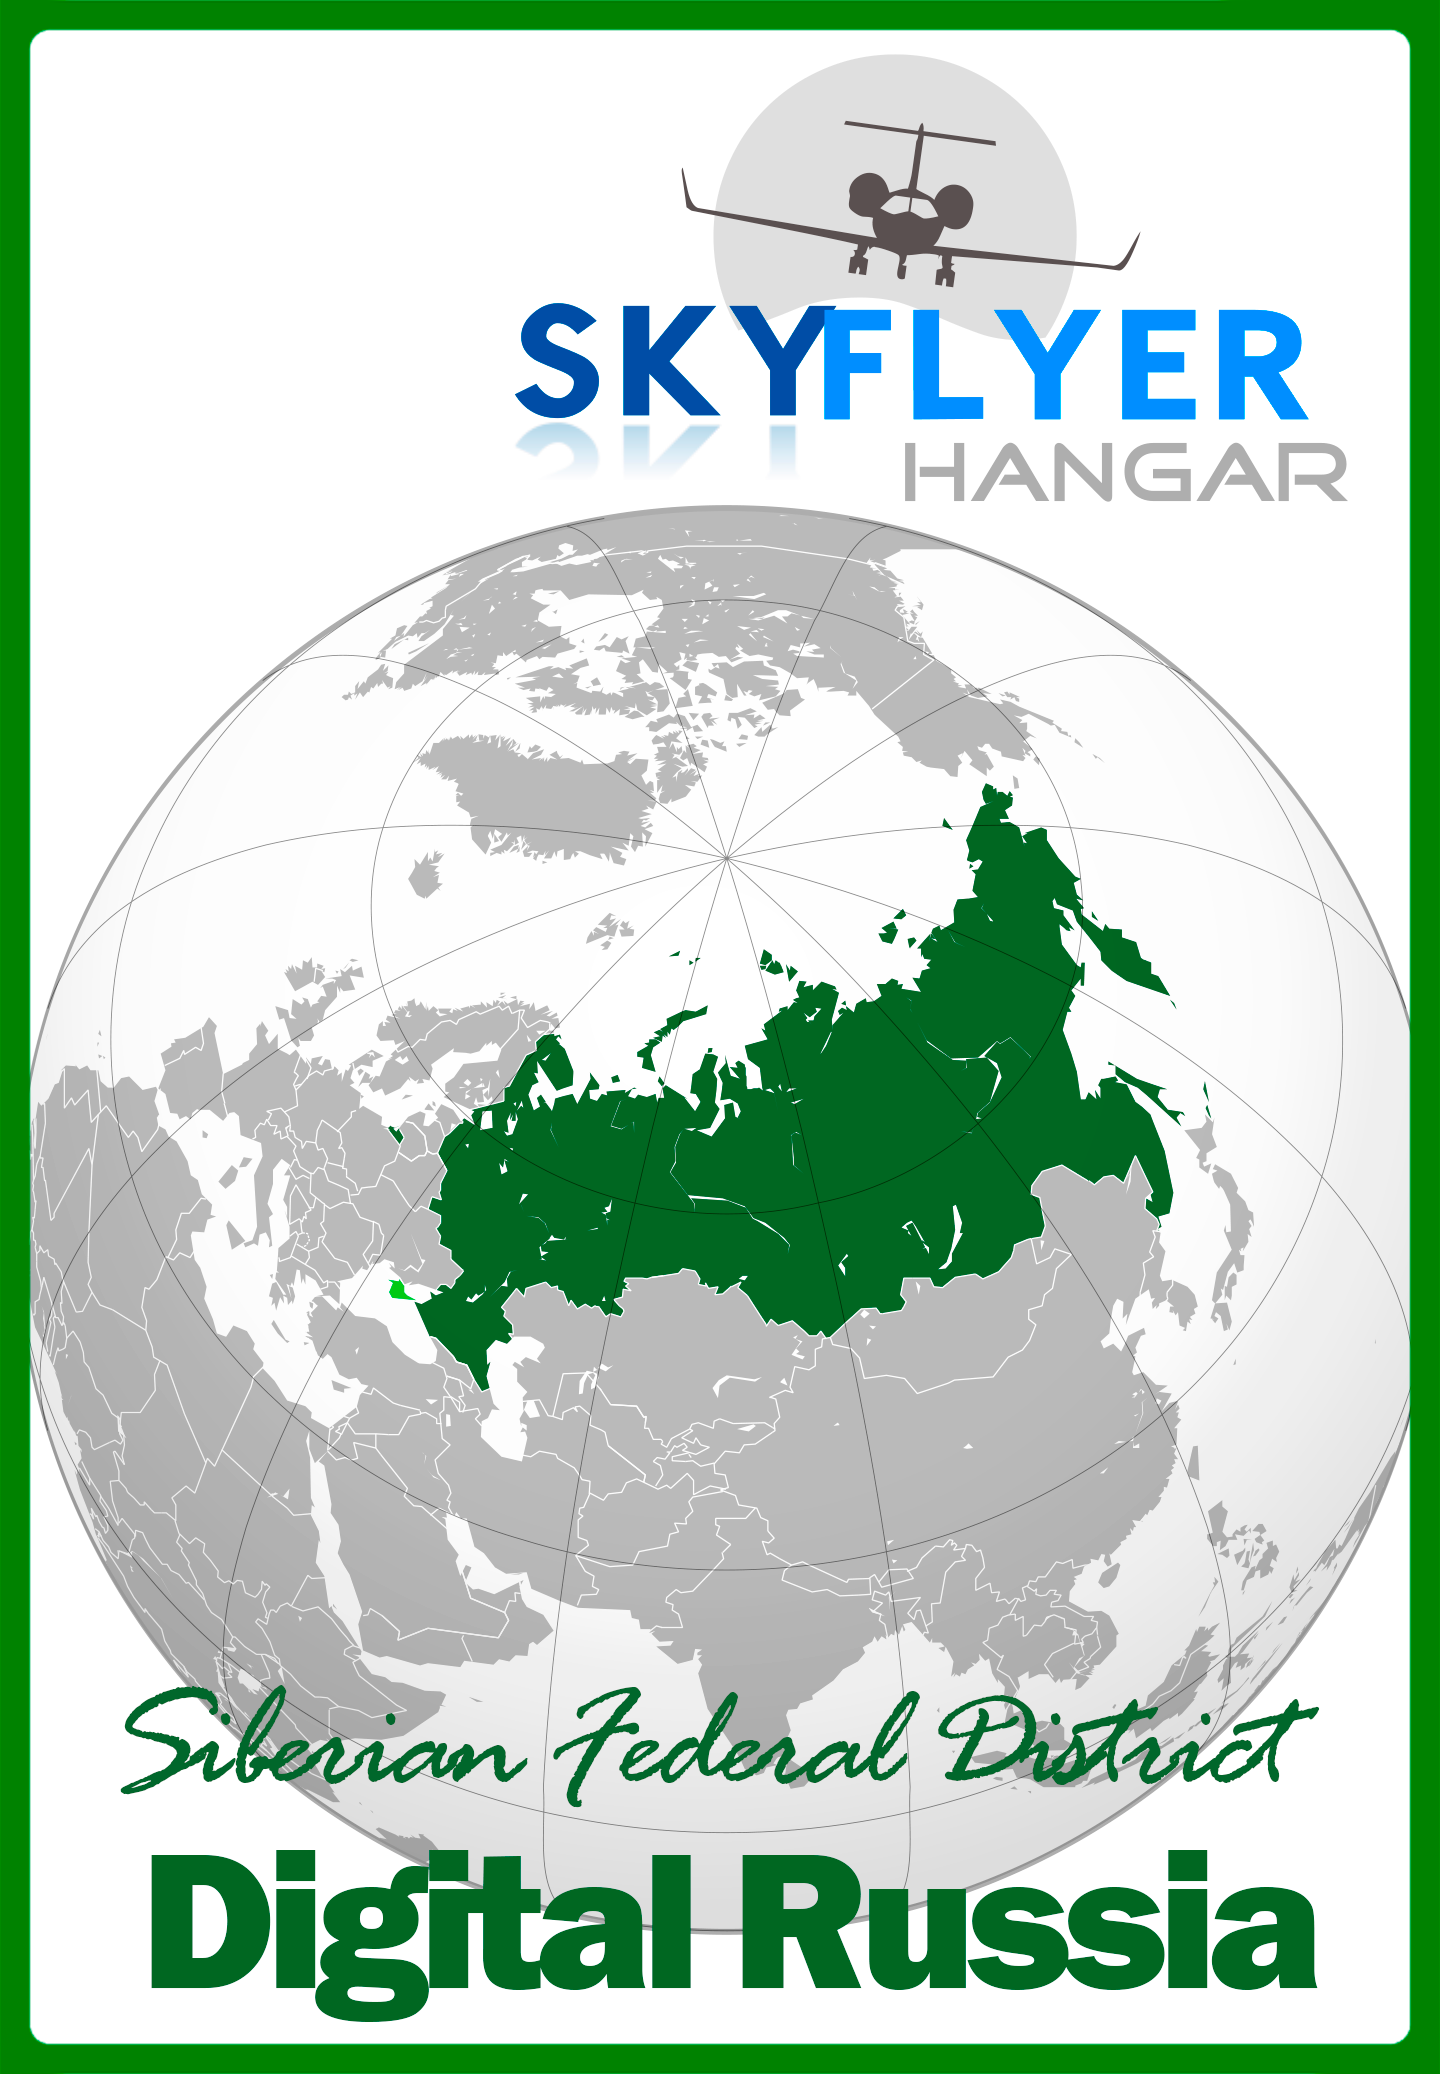 SKY FLYER HANGAR - DIGITAL RUSSIA SIBERIAN FEDERAL DISTRICT P3D4 P3D5